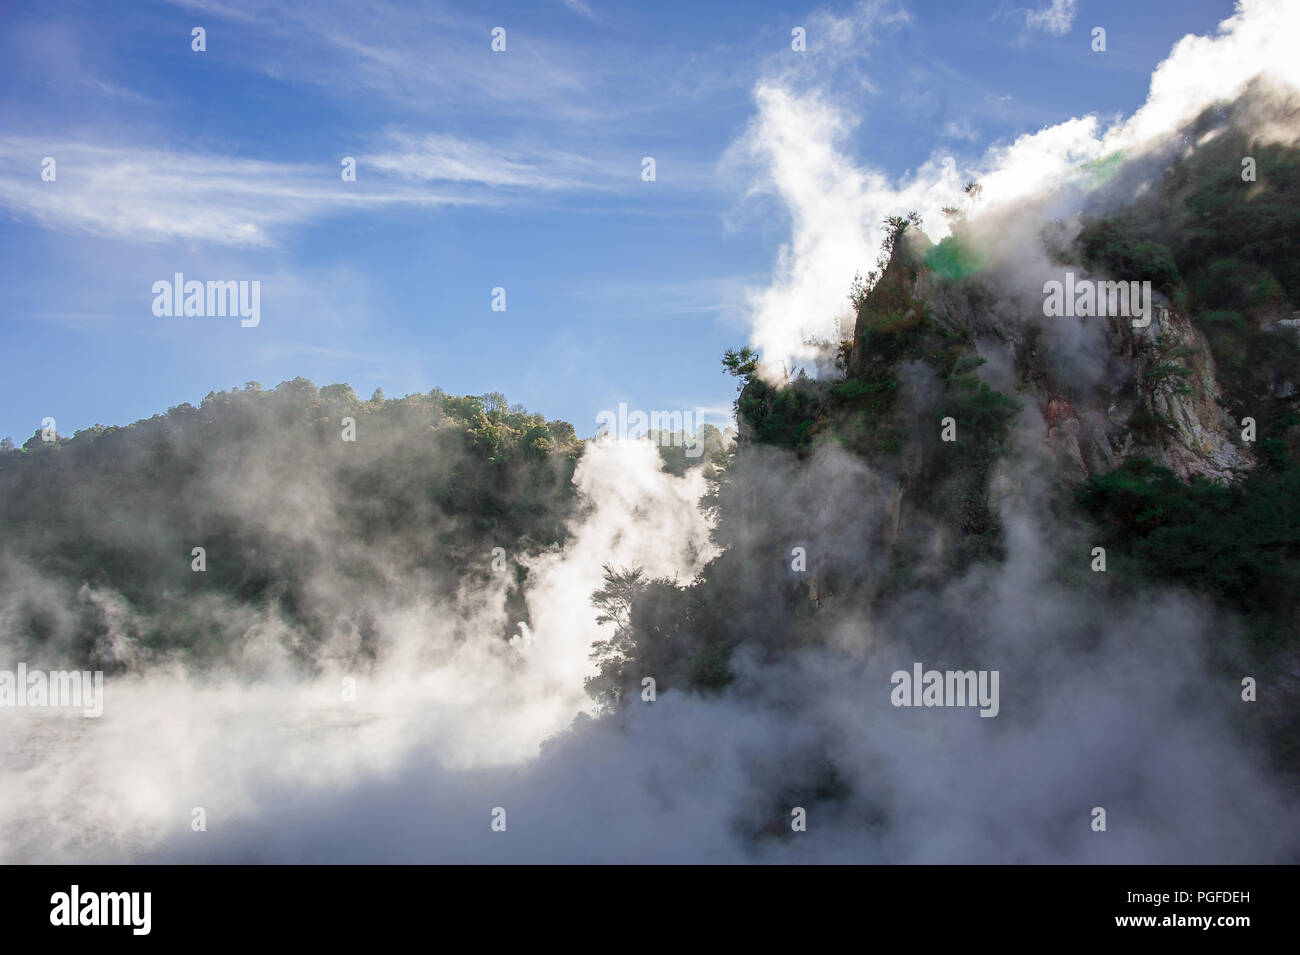 Frying Pan Lake, Waimangu Volcanic Valley, New Zealand. Steam rising from vents in a prehistoric forest landscape. - Stock Image